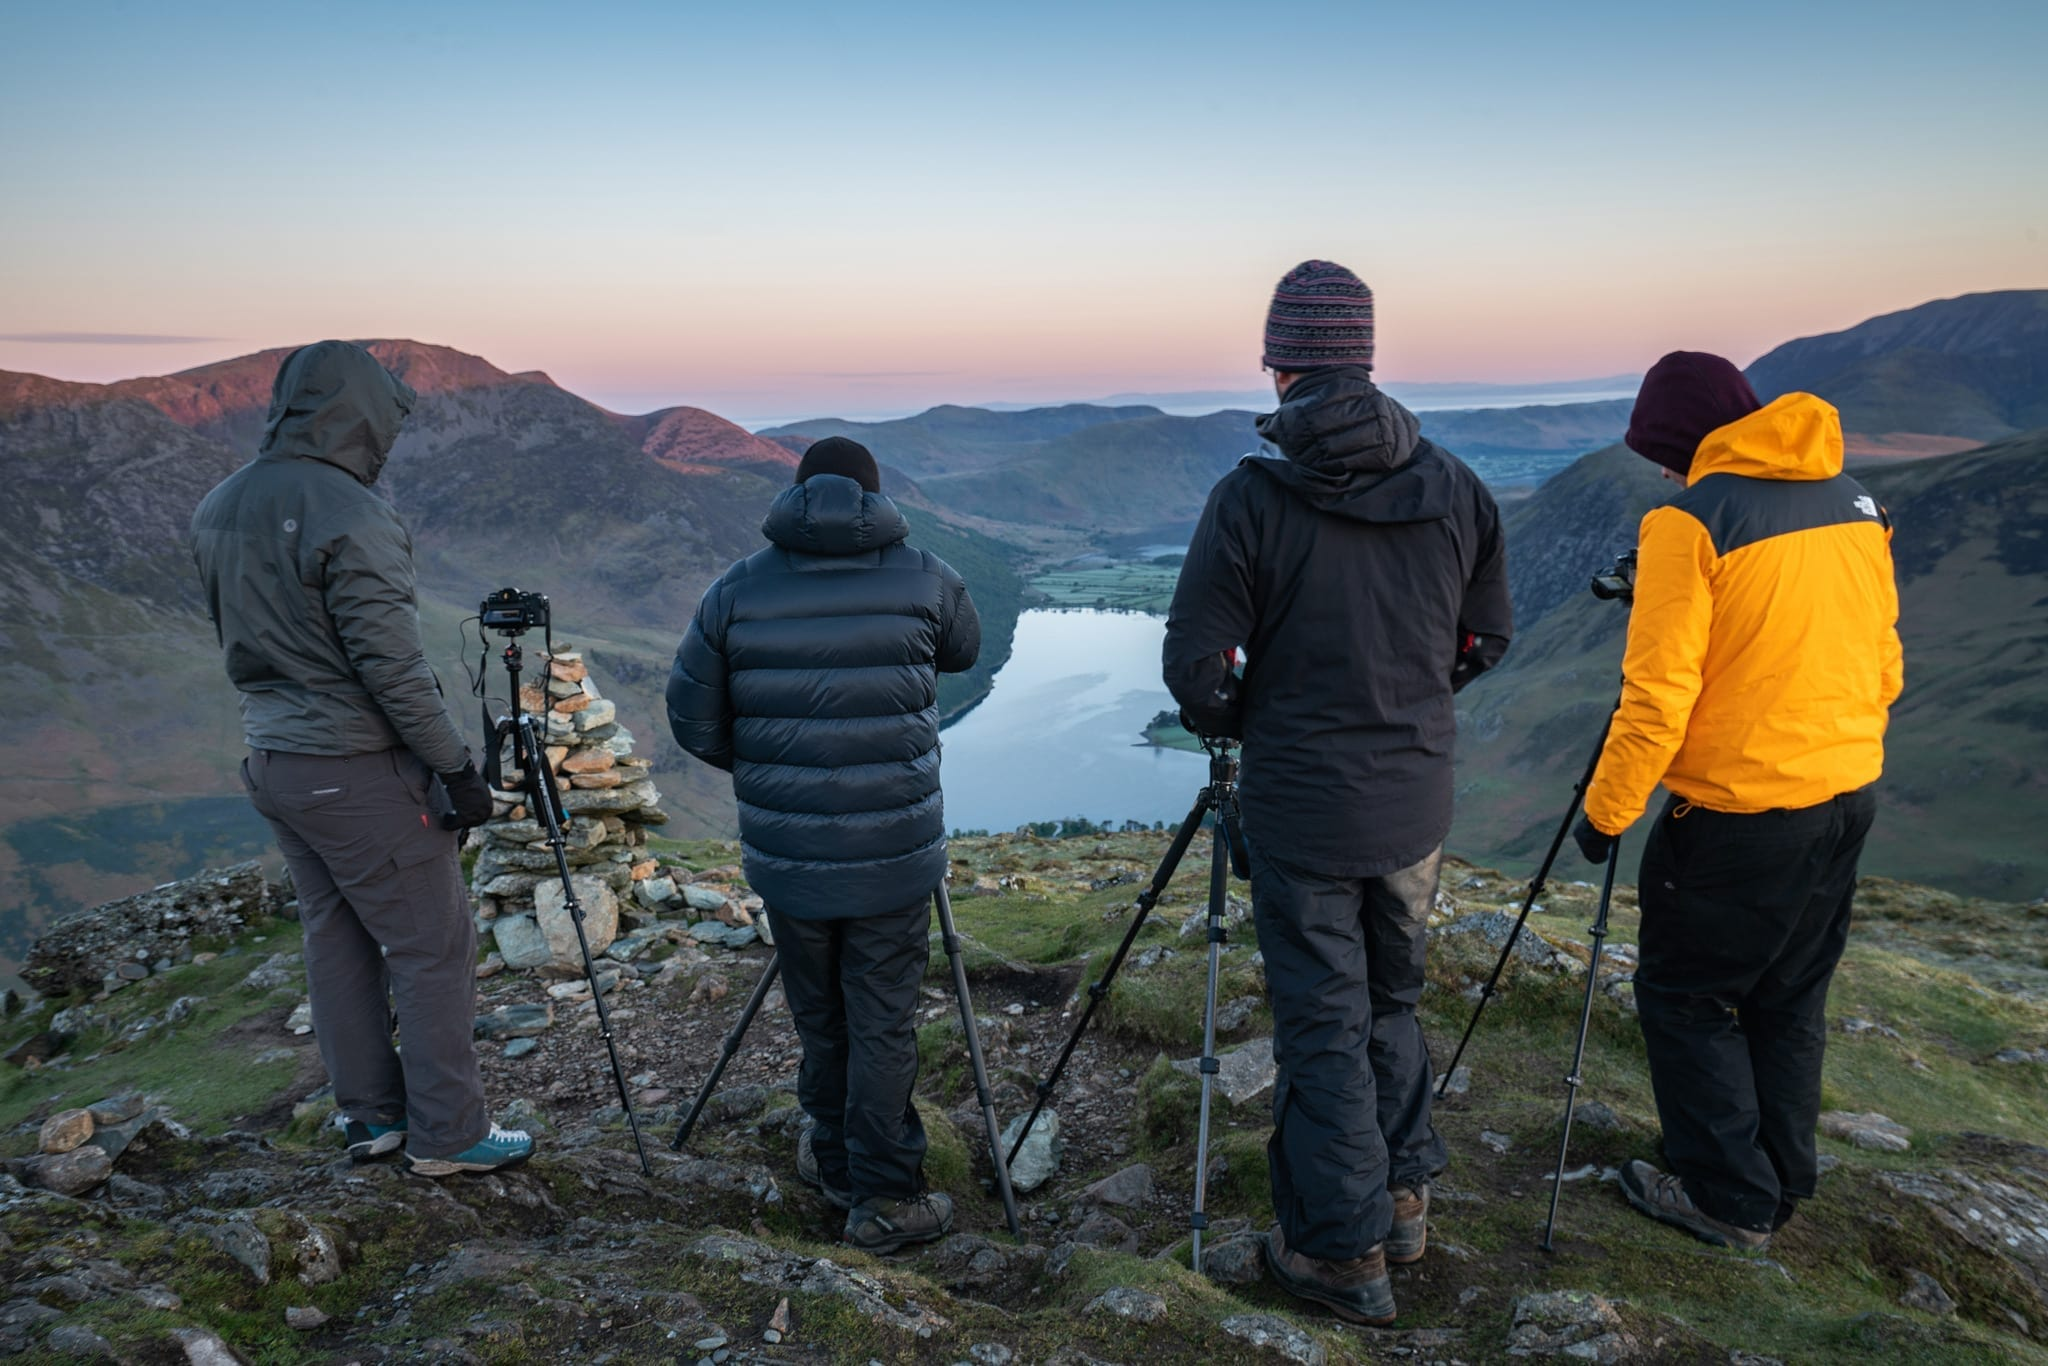 Lake District Wild Camping Photography Workshop